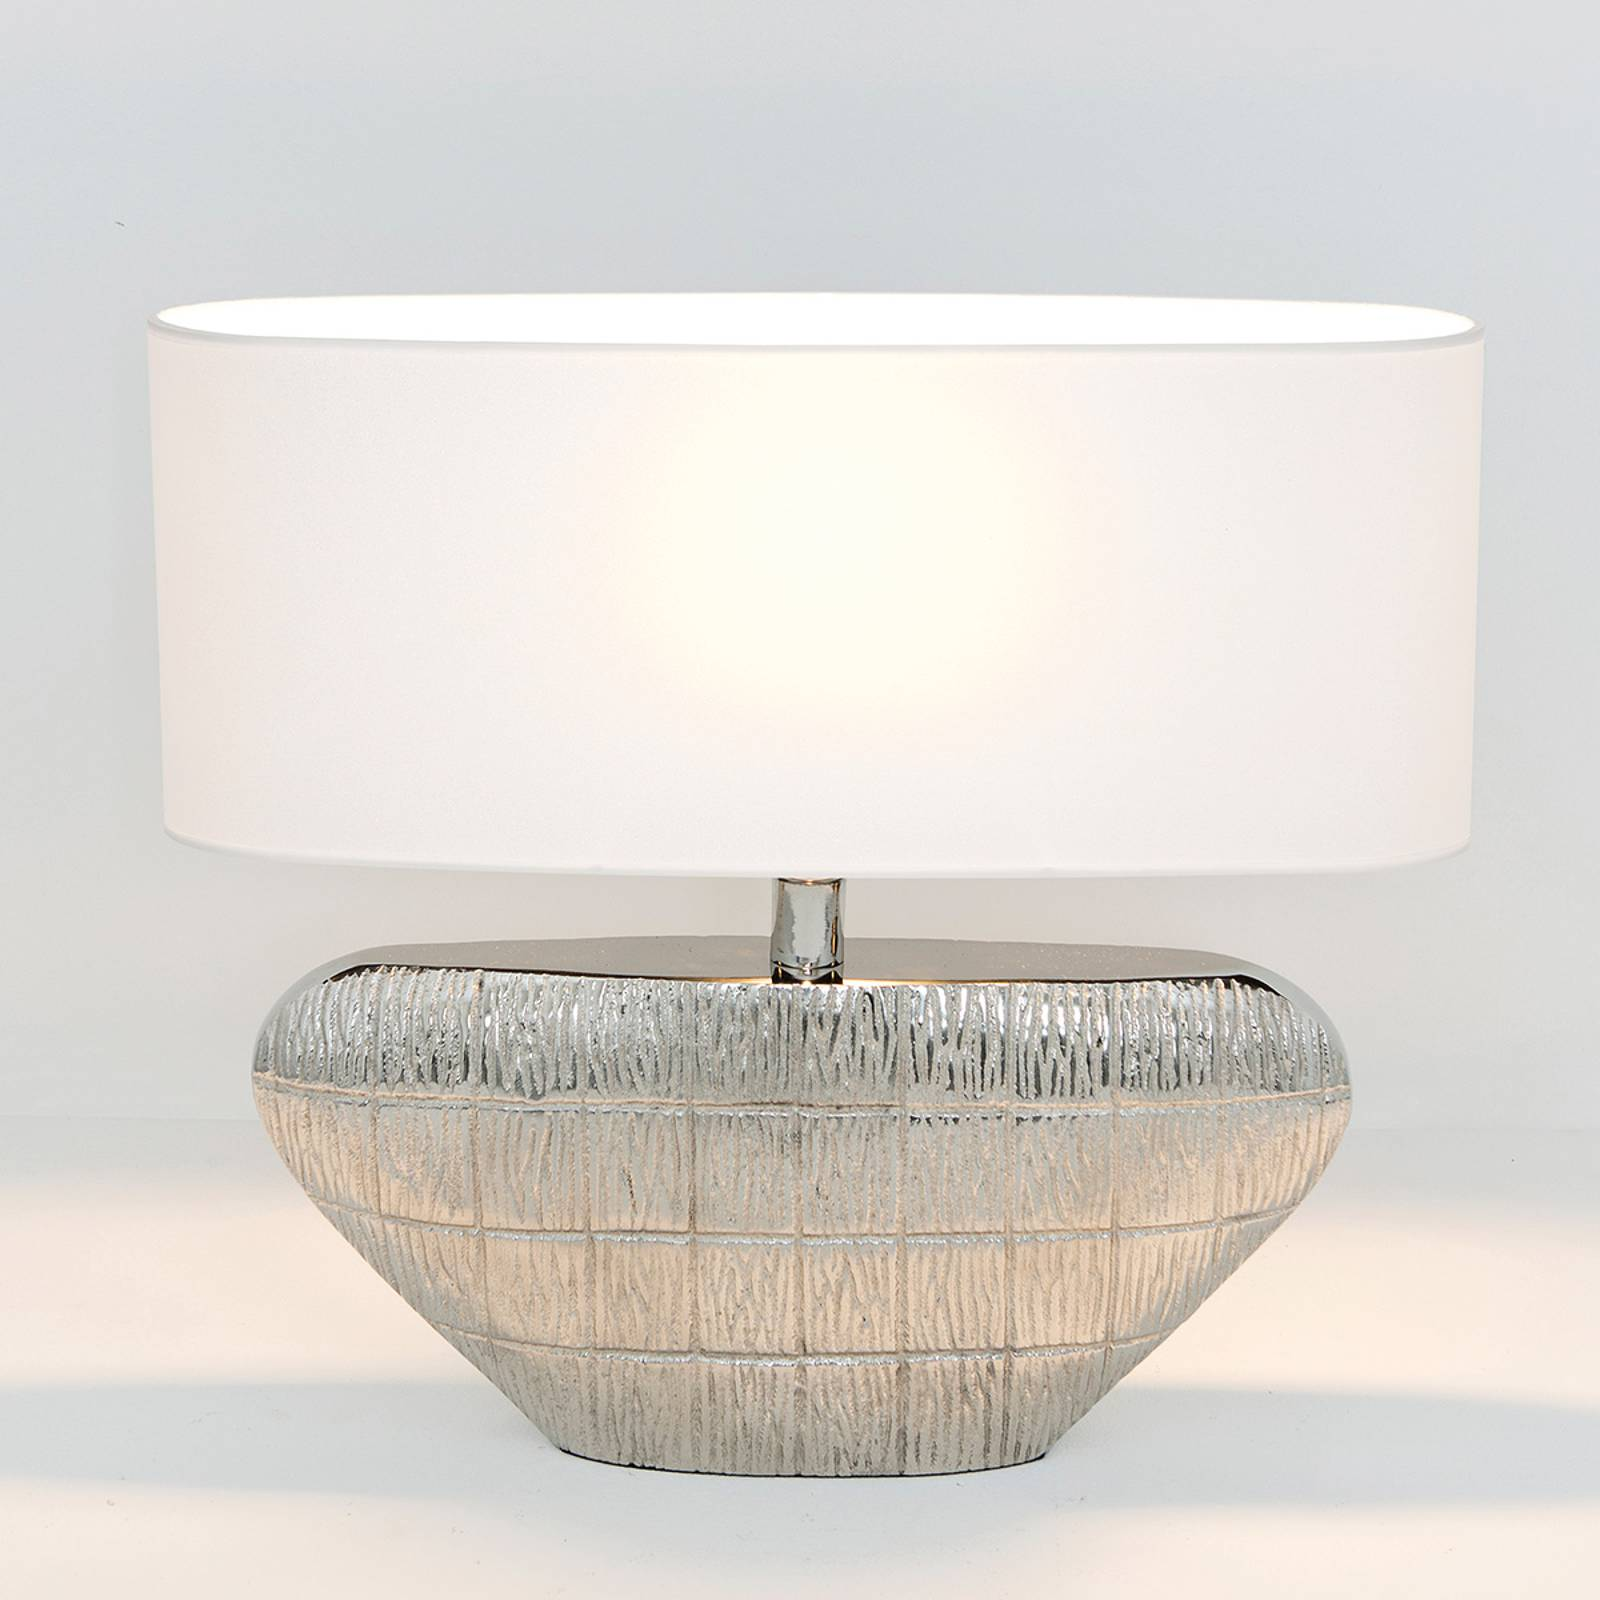 Cleopatra oval table lamp with a fabric lampshade from J. Holländer